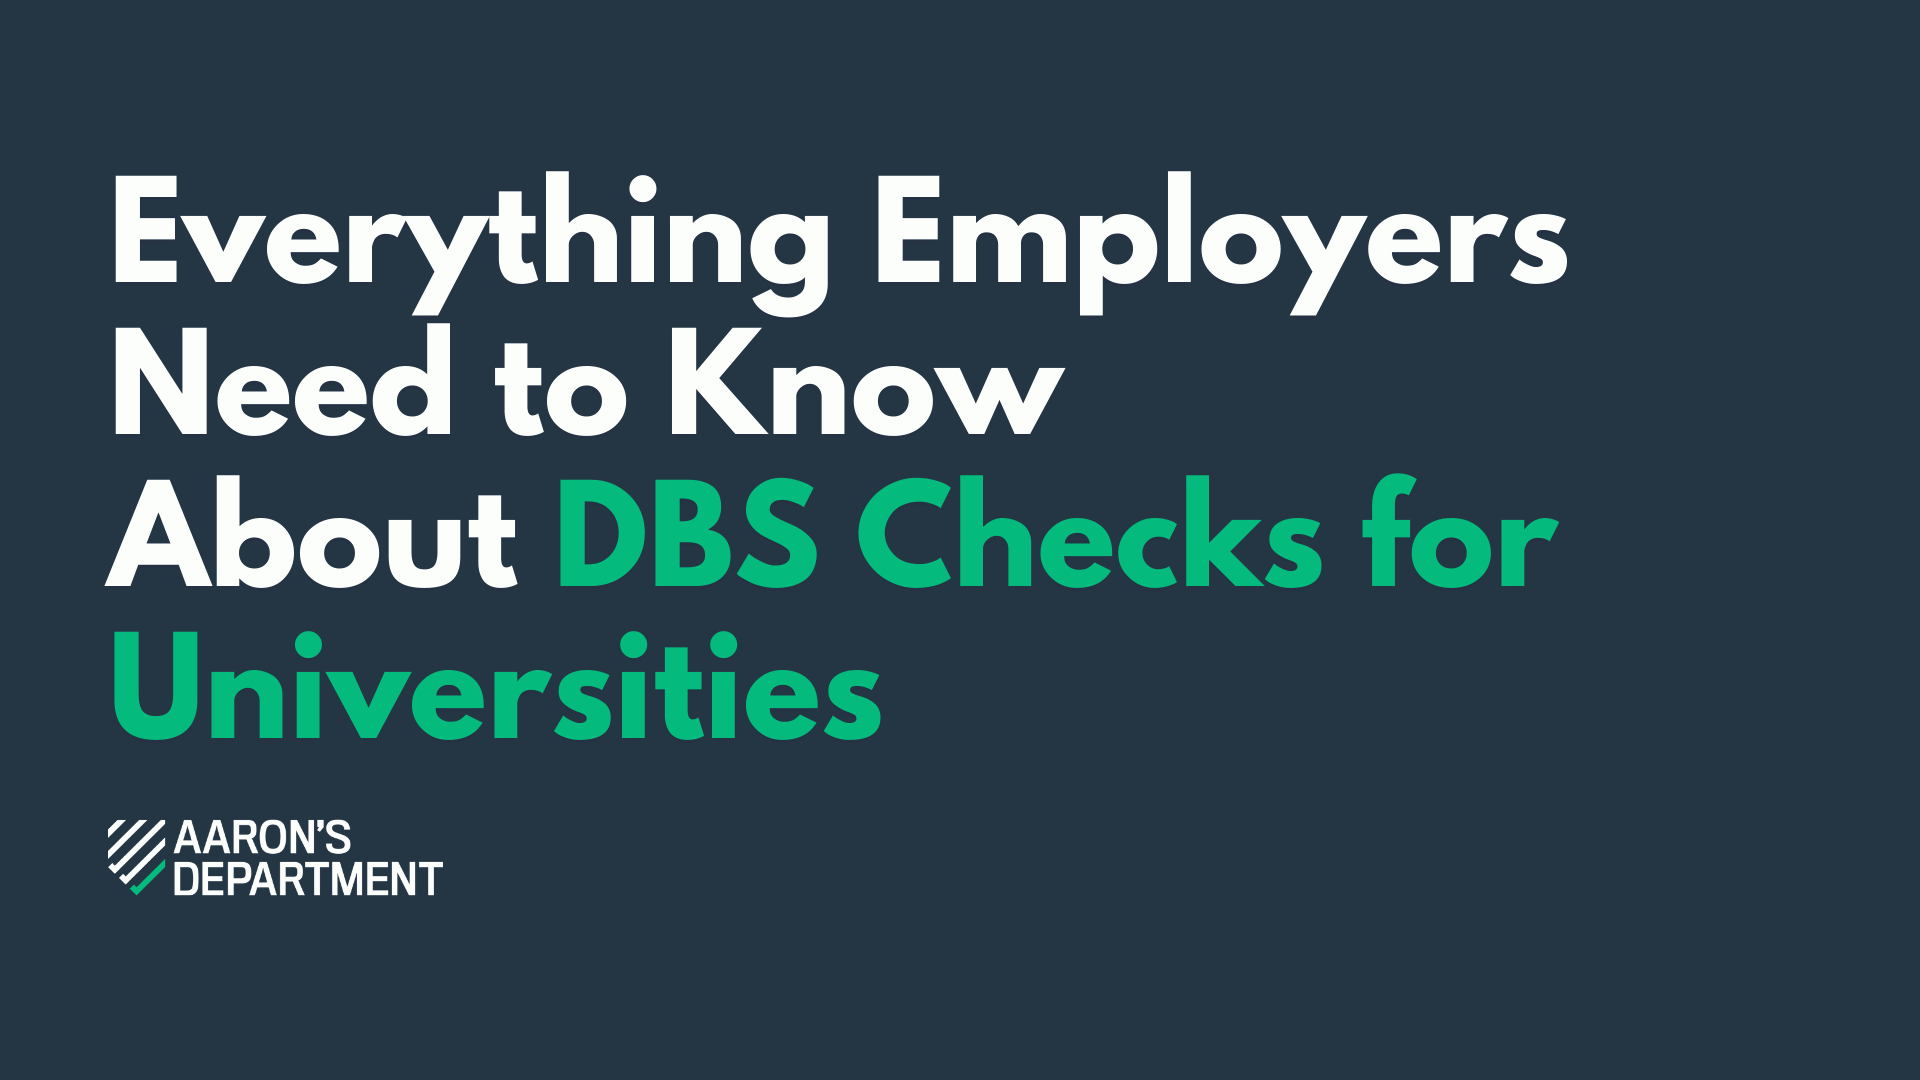 Everything Employers Need to Know About DBS Checks for Universities